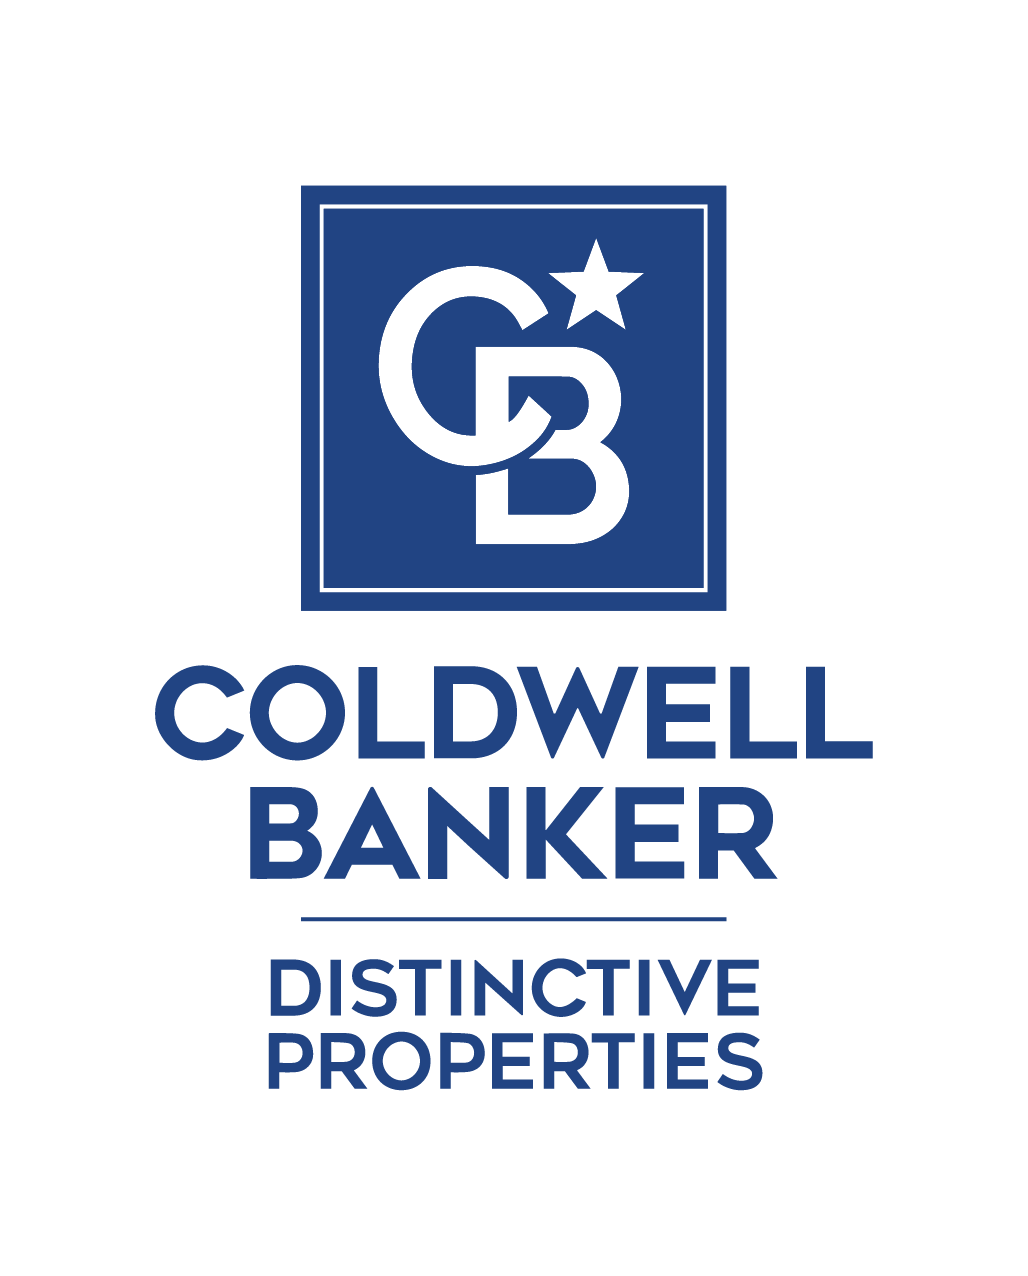 Dustin Spyke - Coldwell Banker Distinctive Properties Logo